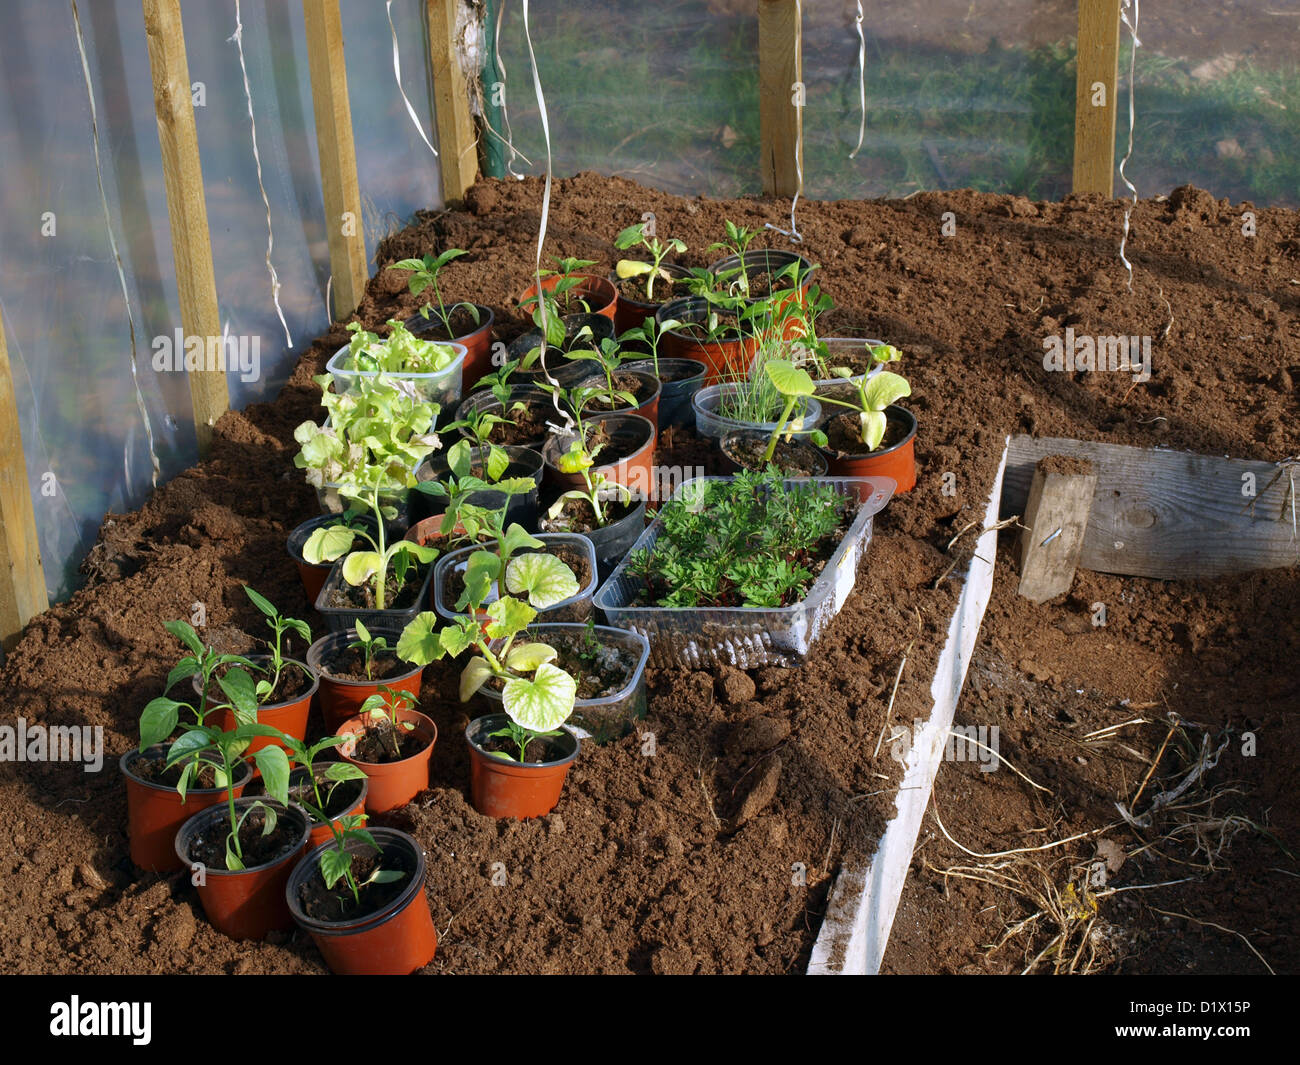 Vegetable Plants In Plastic Pots On Ground In Greenhouse, Ready For Planting